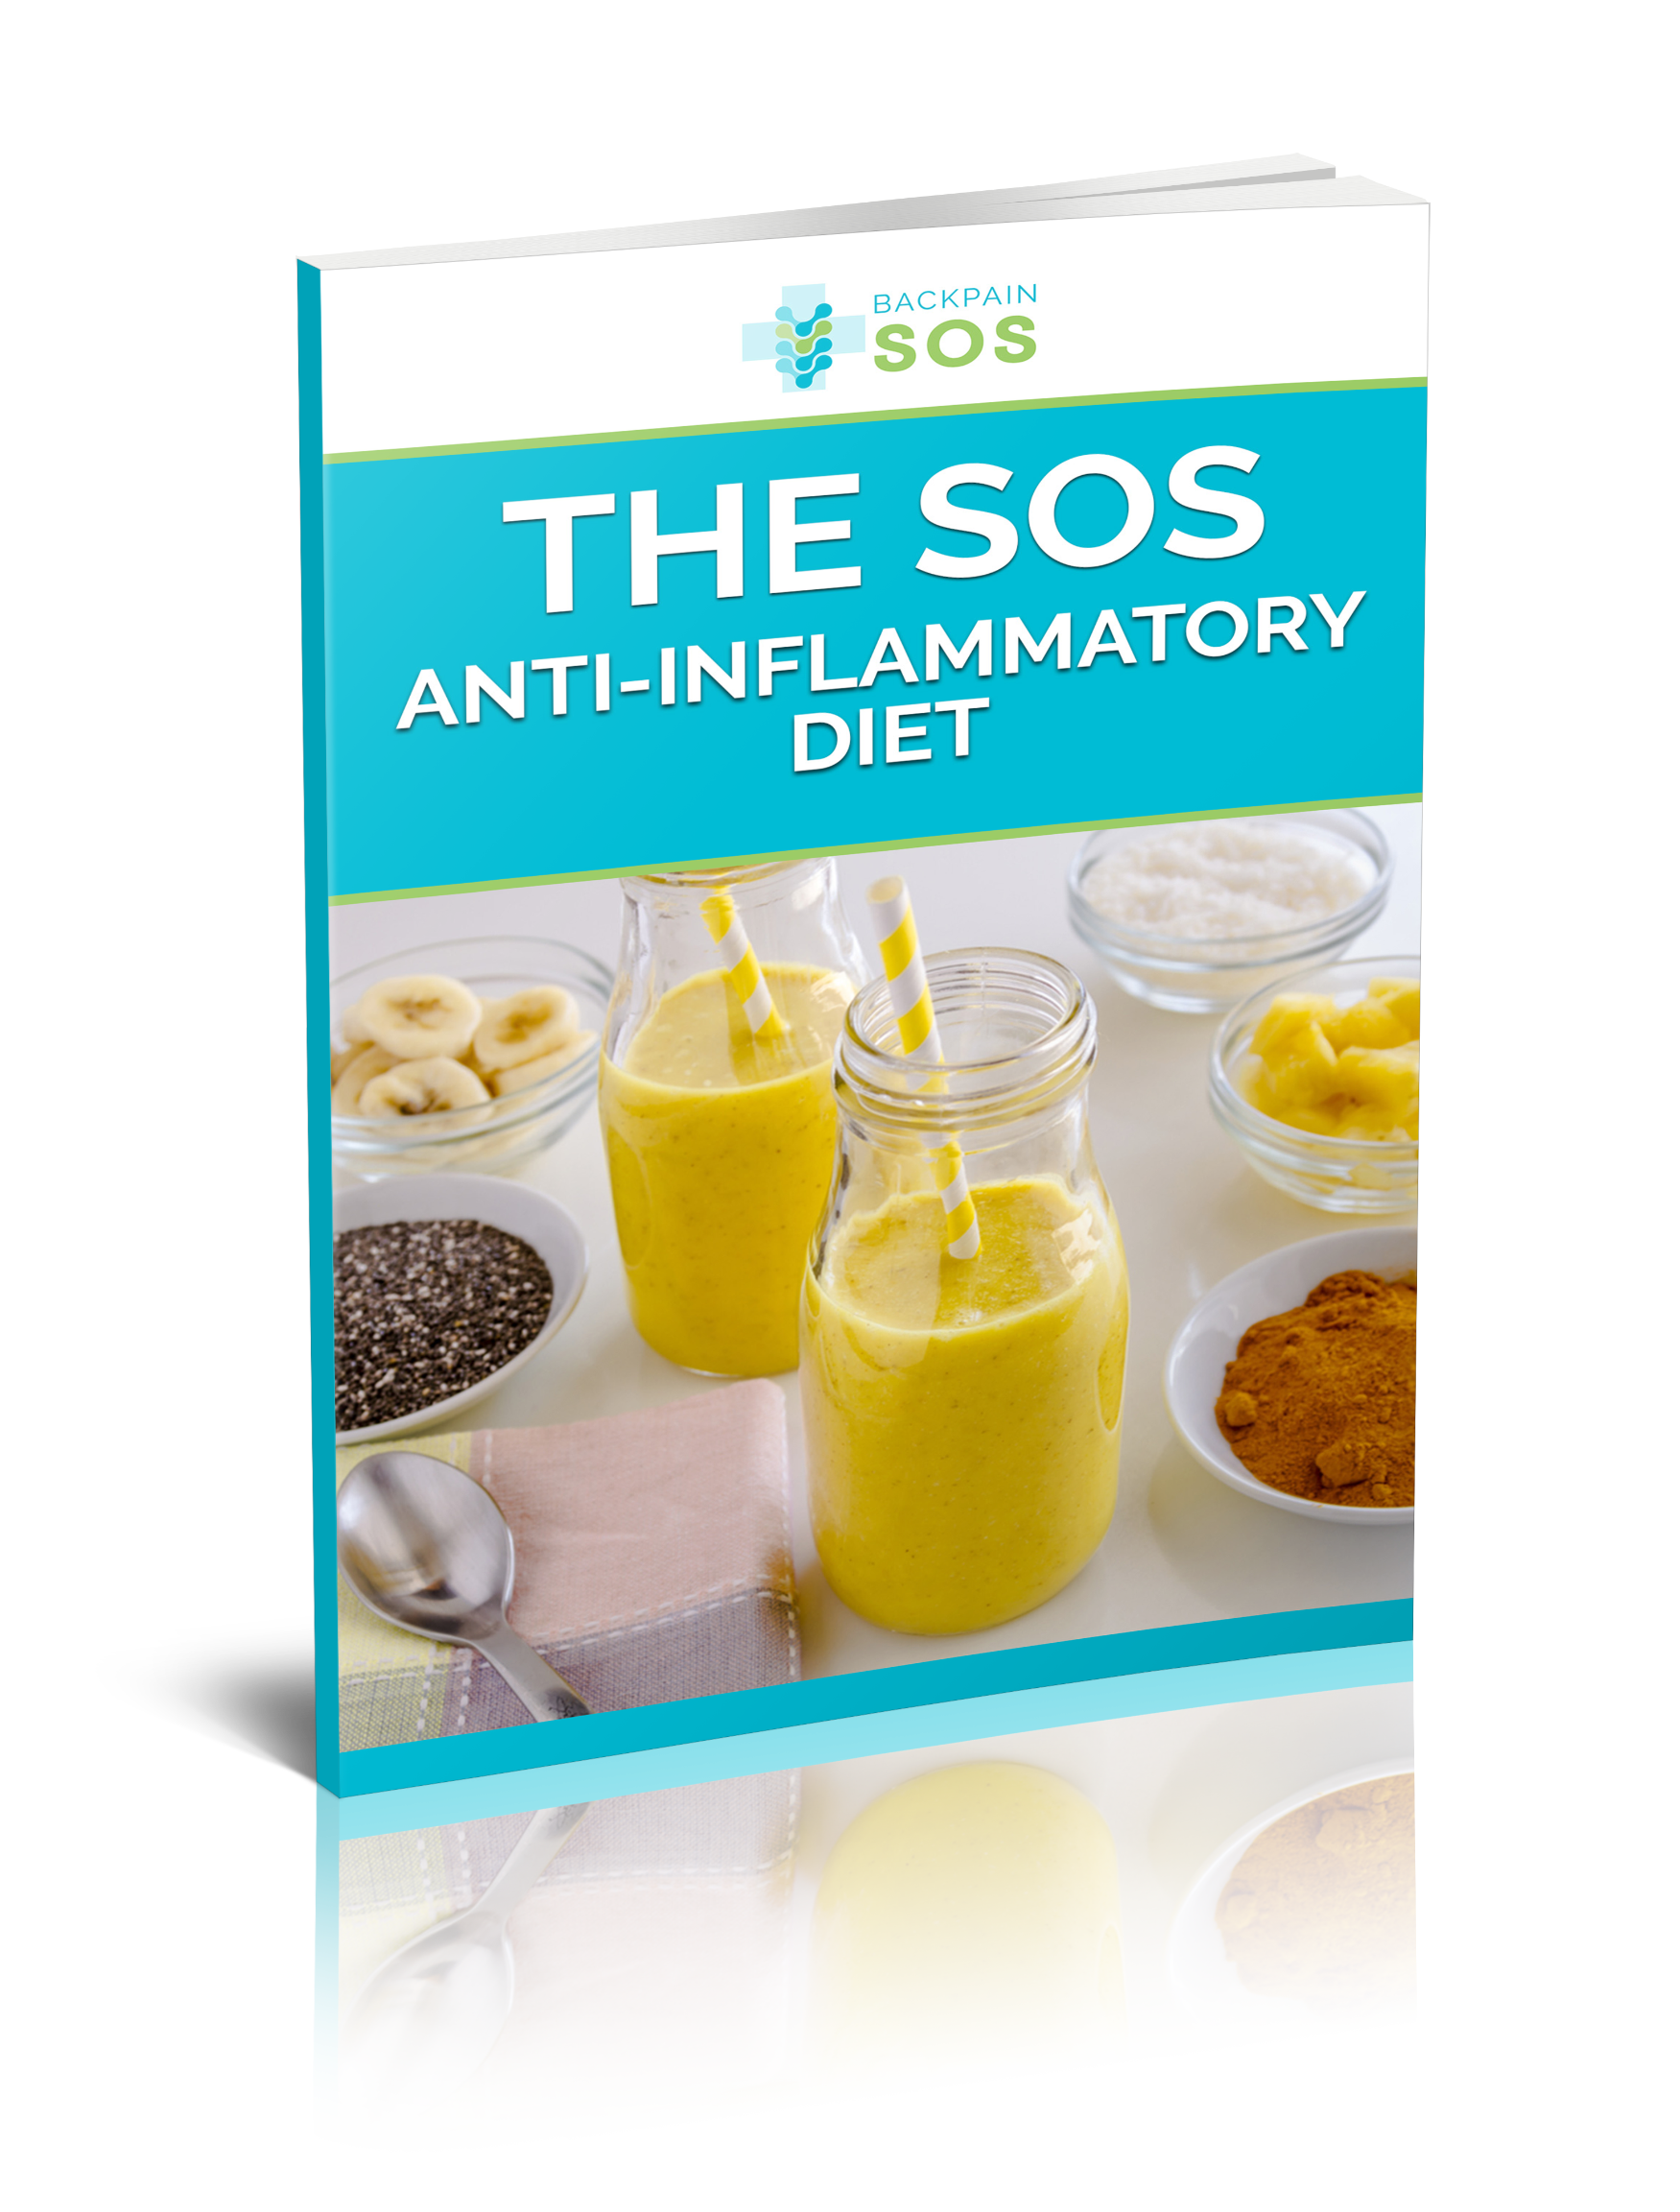 The SOS Anti-Inflammatory Diet